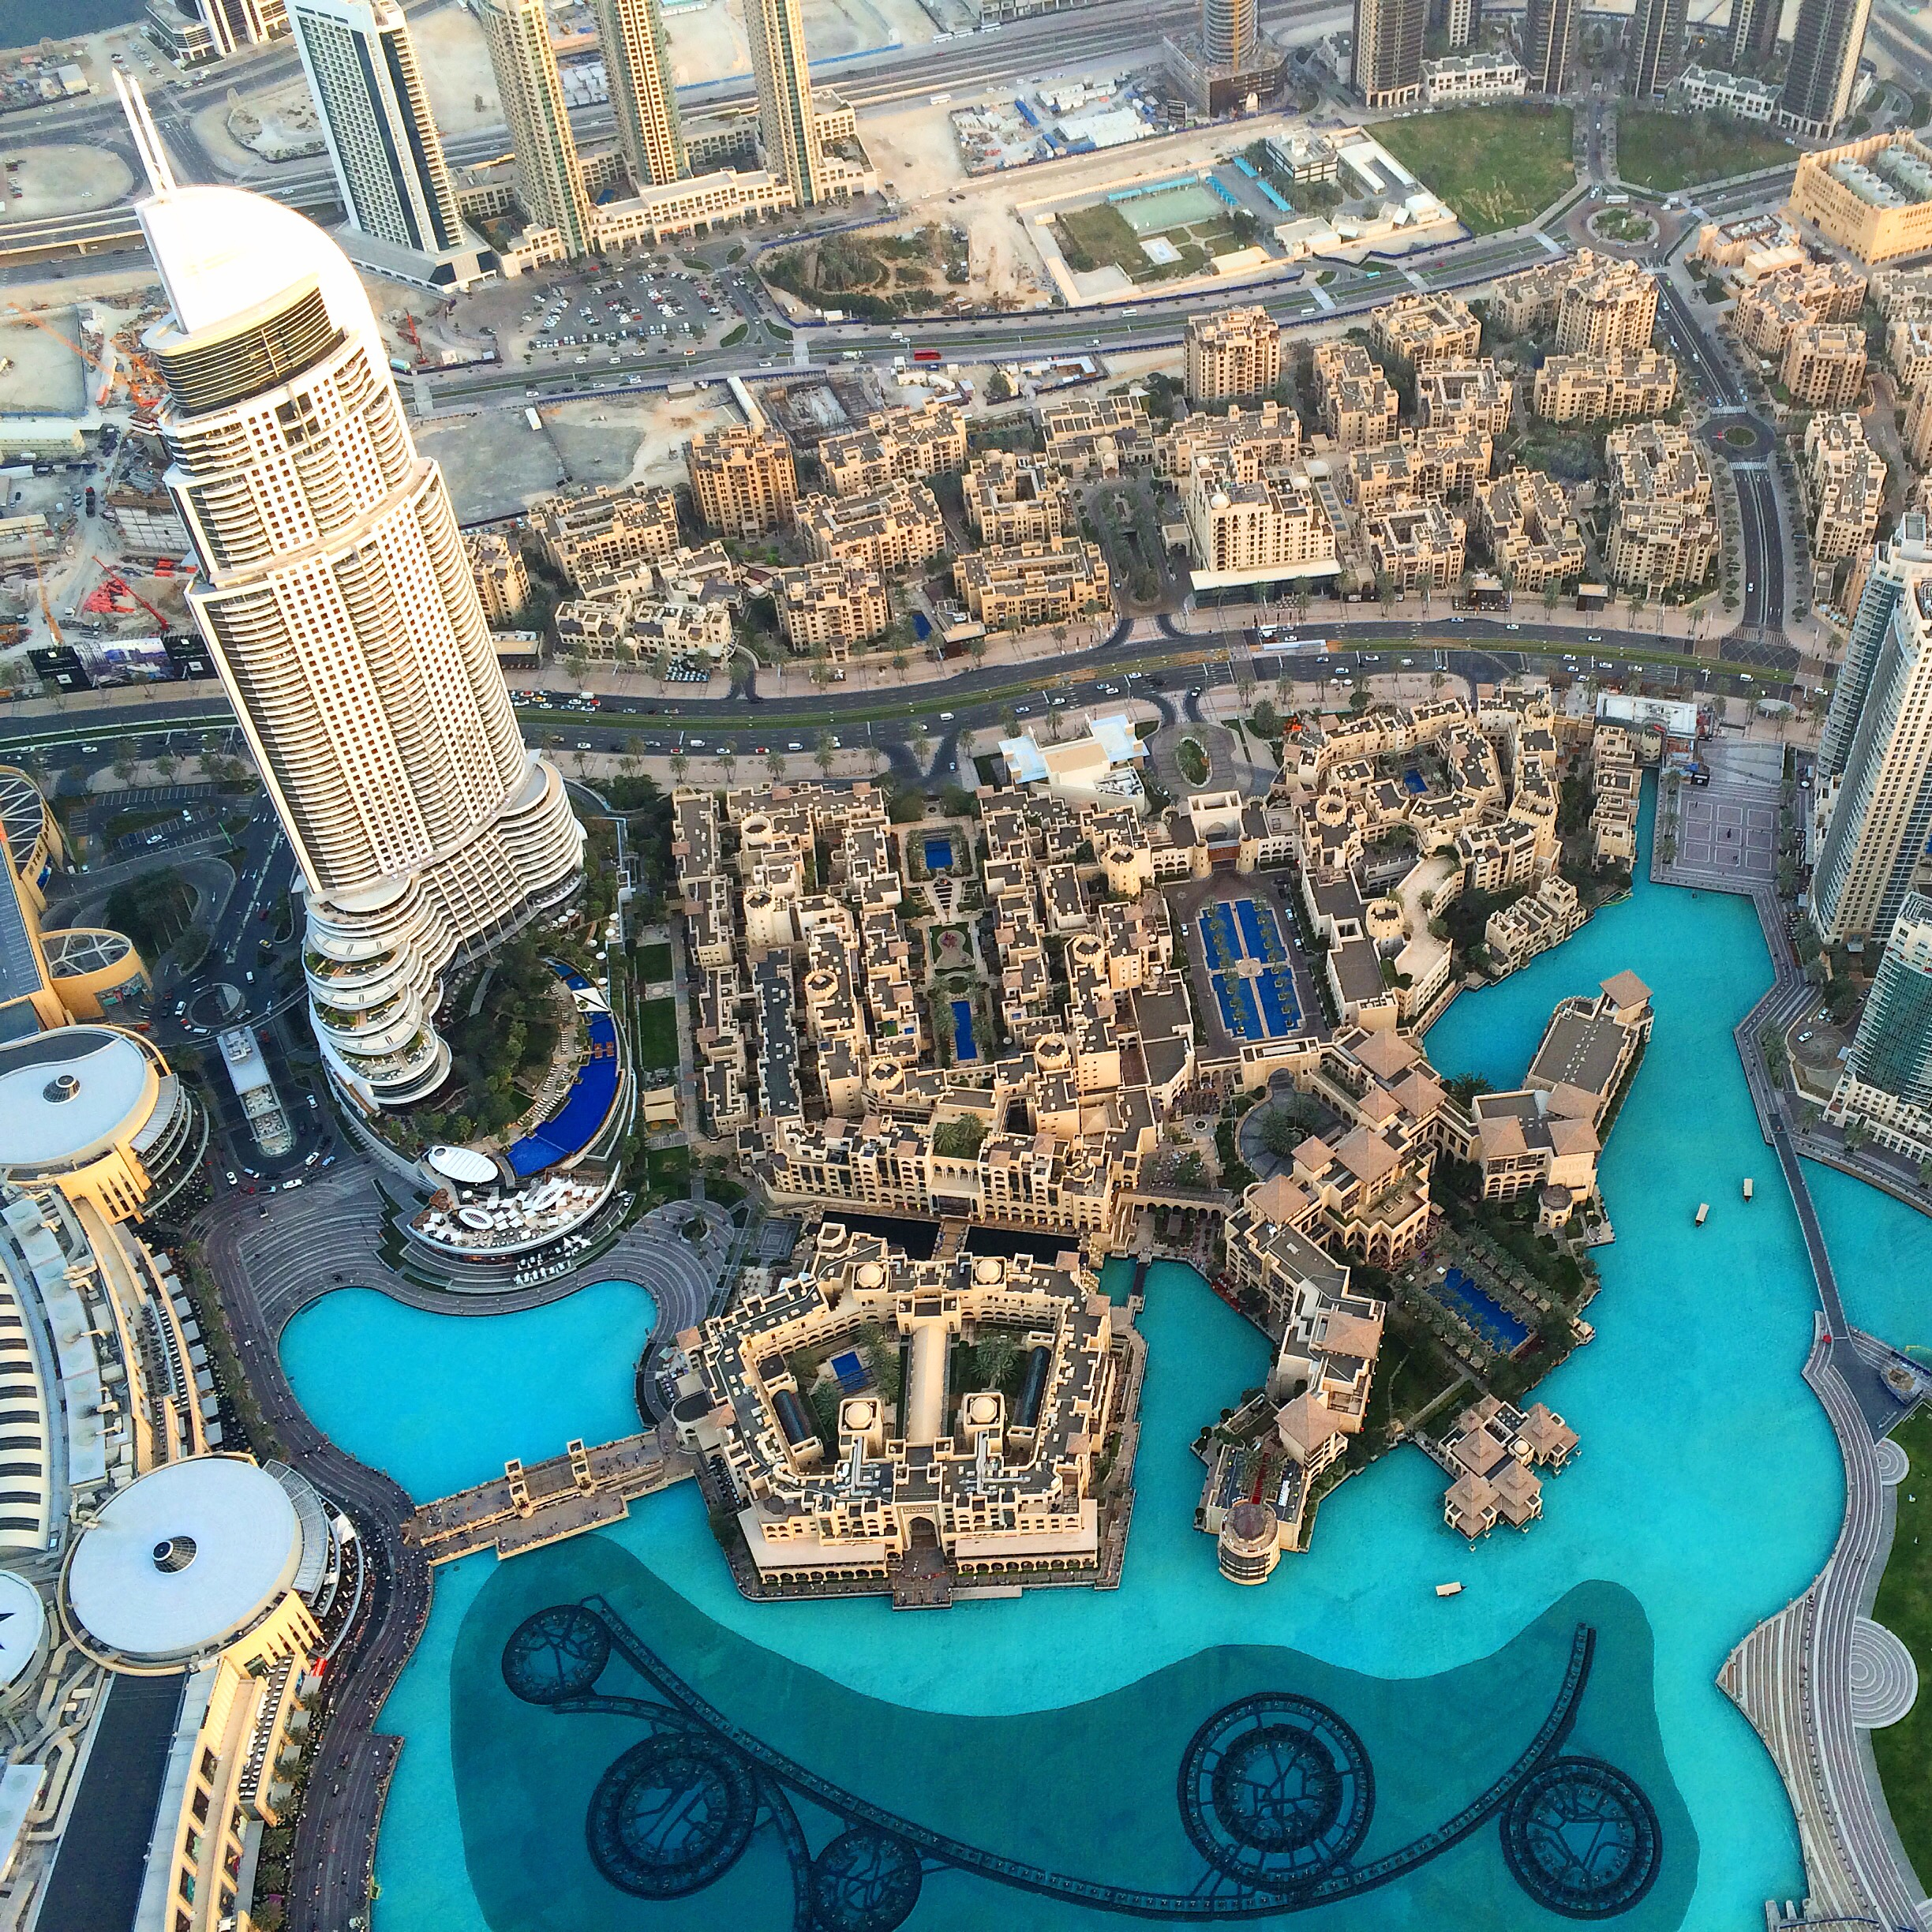 Staring down from the top of the Burj Khalifa in Dubai, UAE.